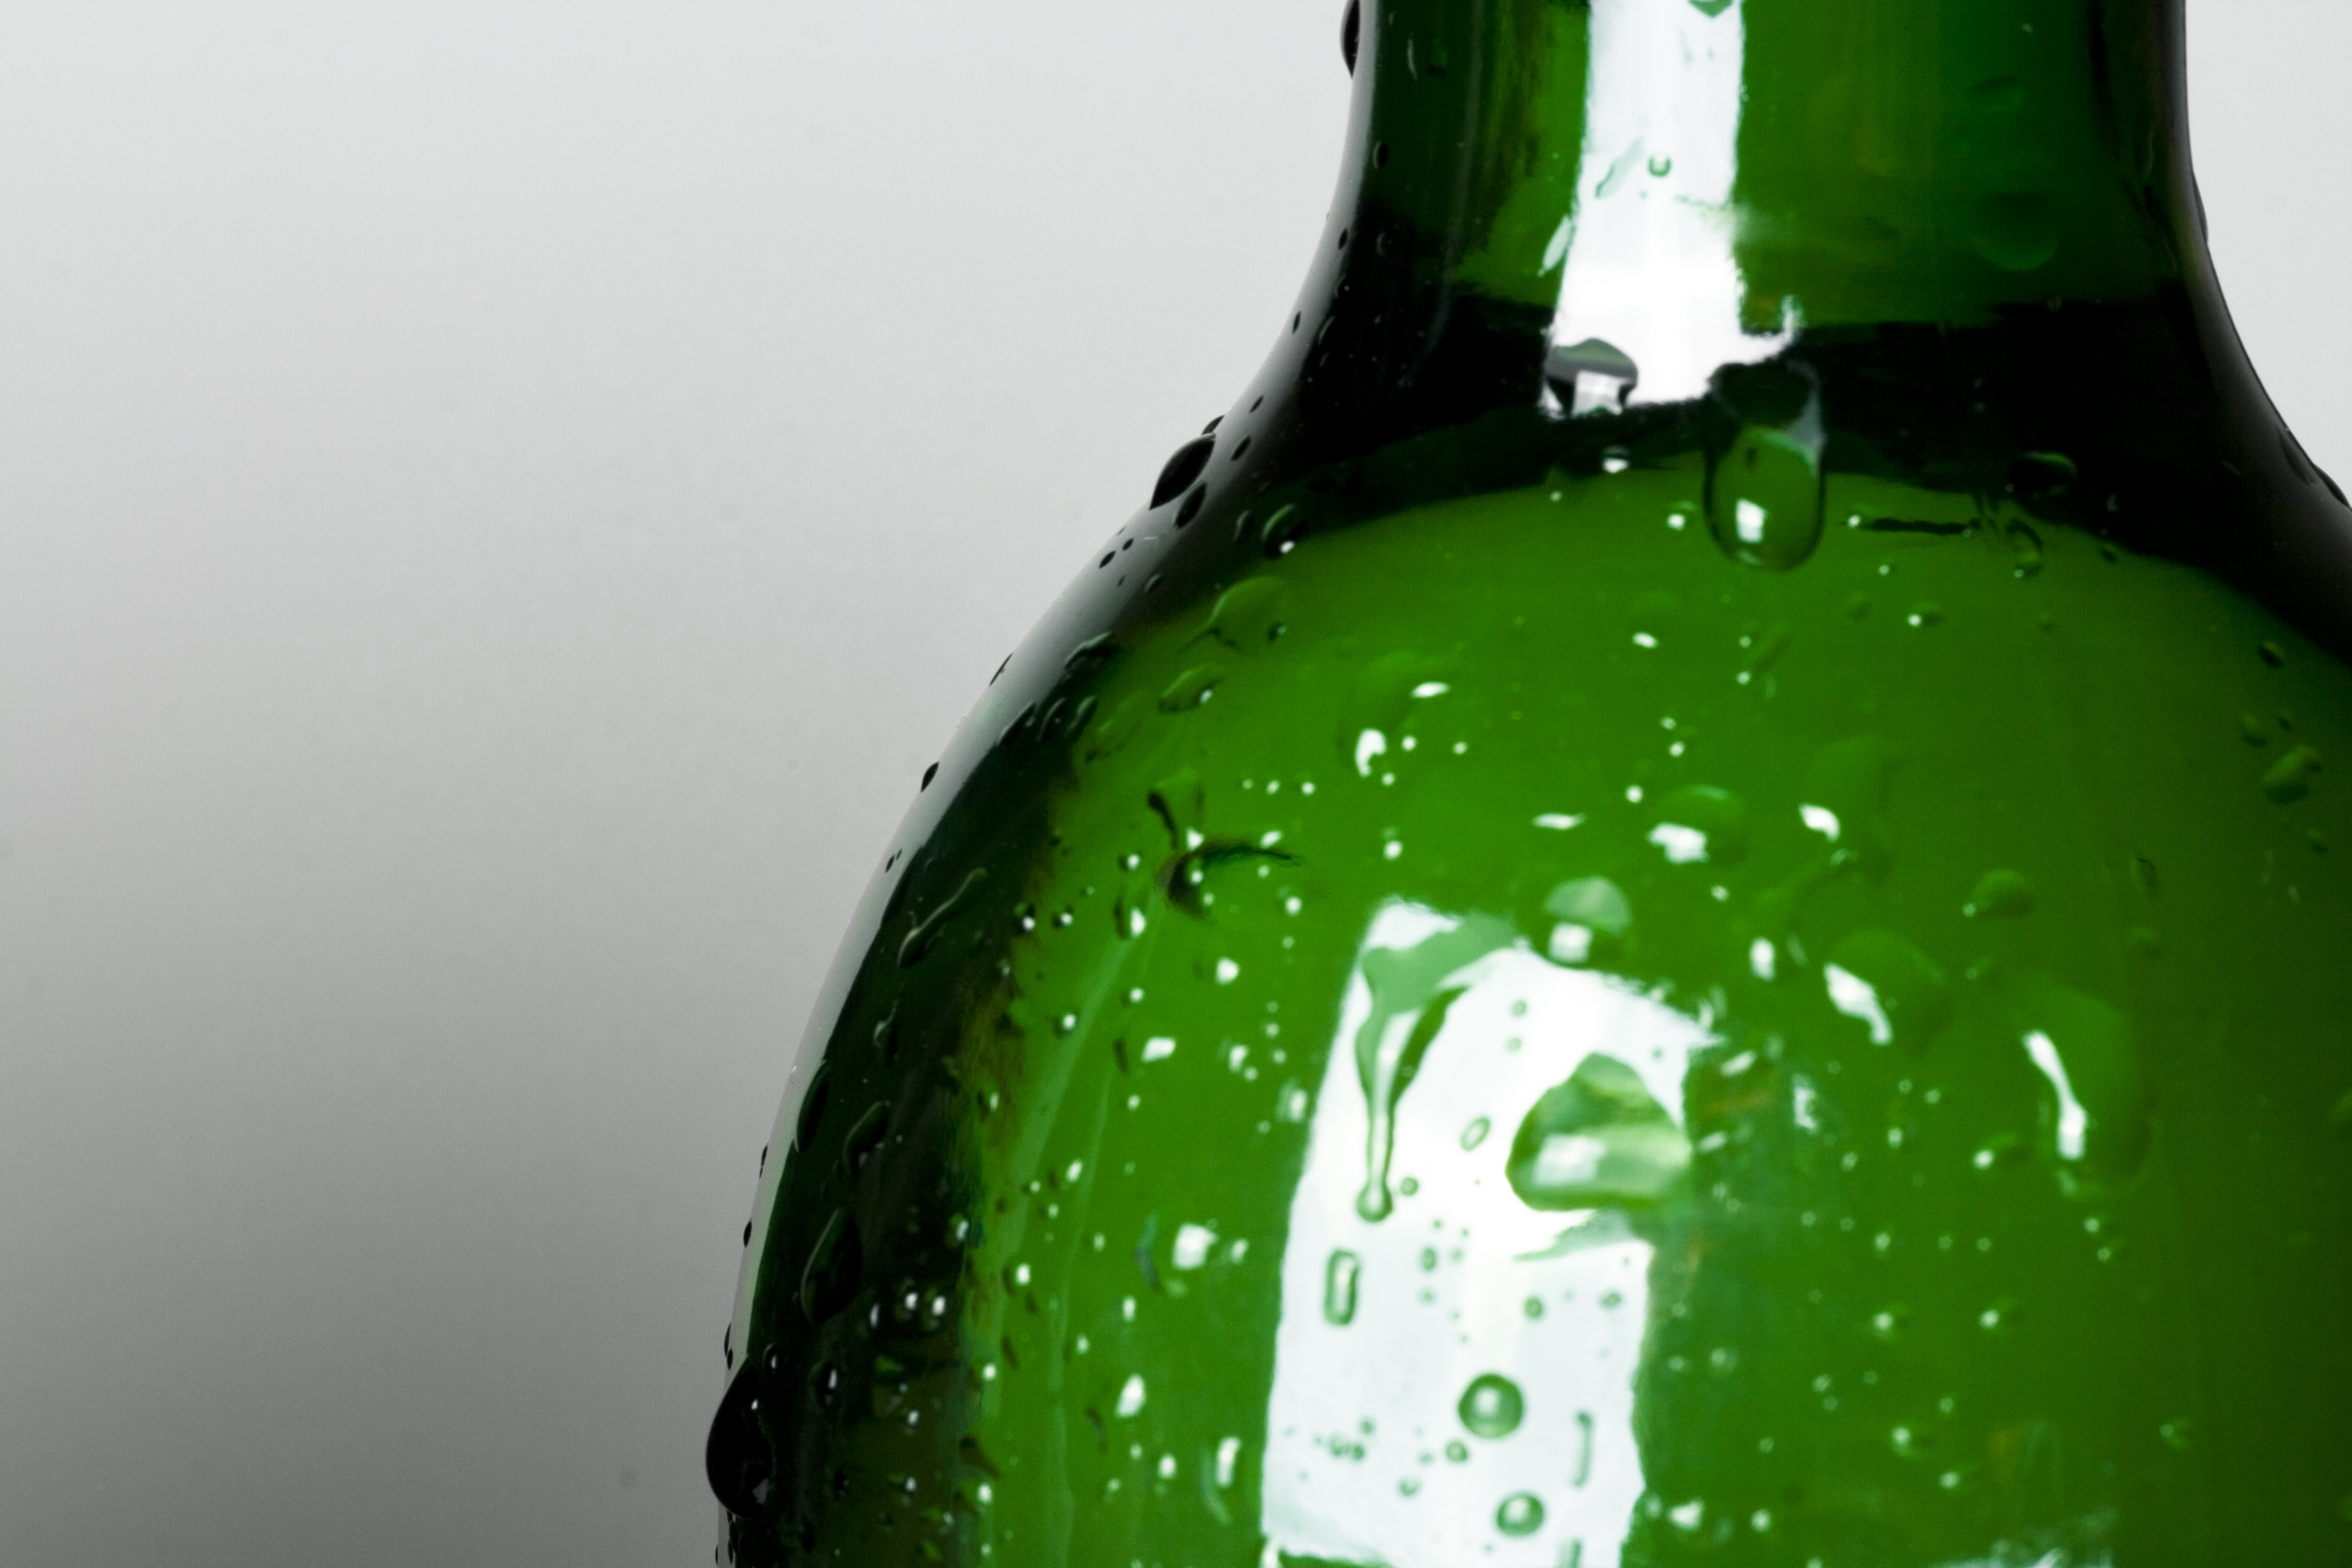 Bottle with water drops photo